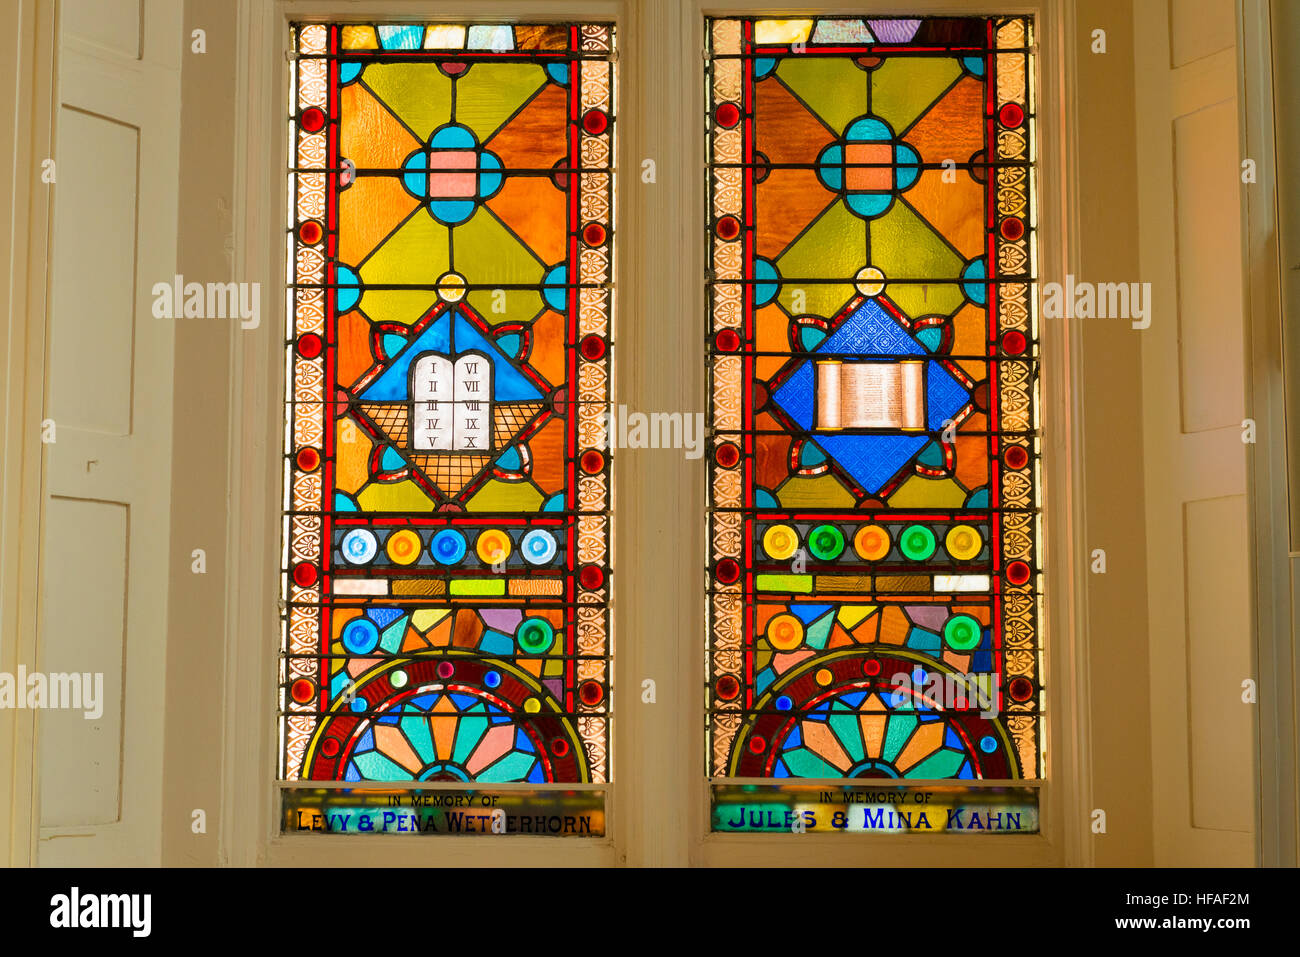 South Carolina Charleston Kahal Kadosh Beth Elohim built 1750 est 1695 cradle Reform Judaism 1824 Bimah stained - Stock Image